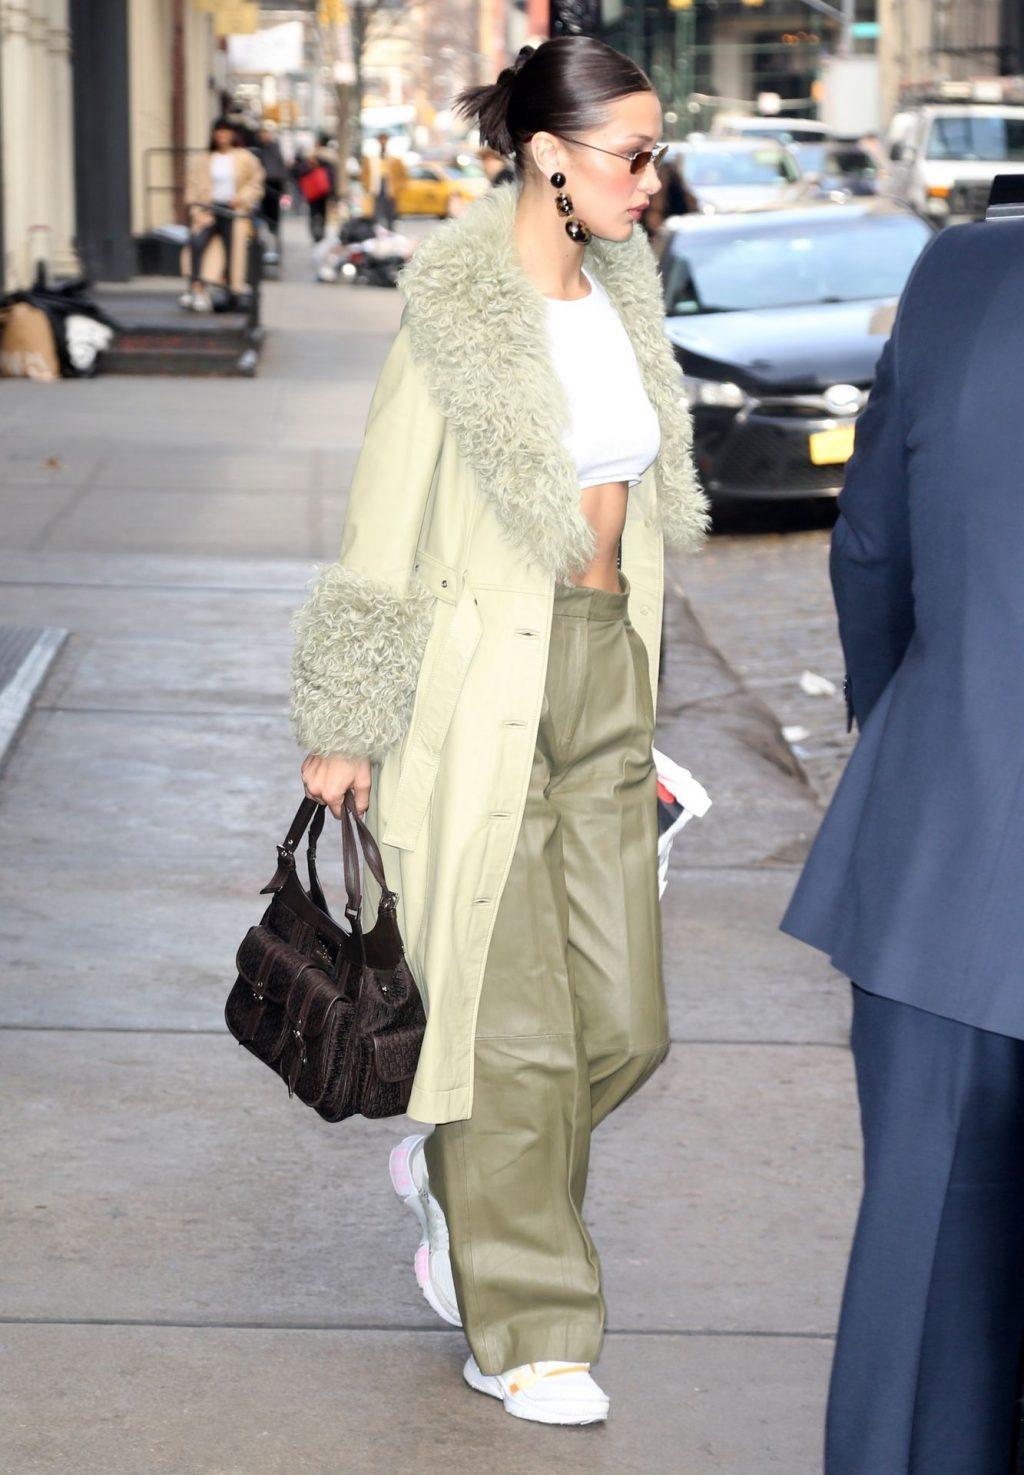 Bella Hadid See through The Fappening Blog 35 1024x1475 - Braless Bella Hadid Arrives at the Park Avenue Armory for the Marc Jacobs Fashion Show (59 Photos)